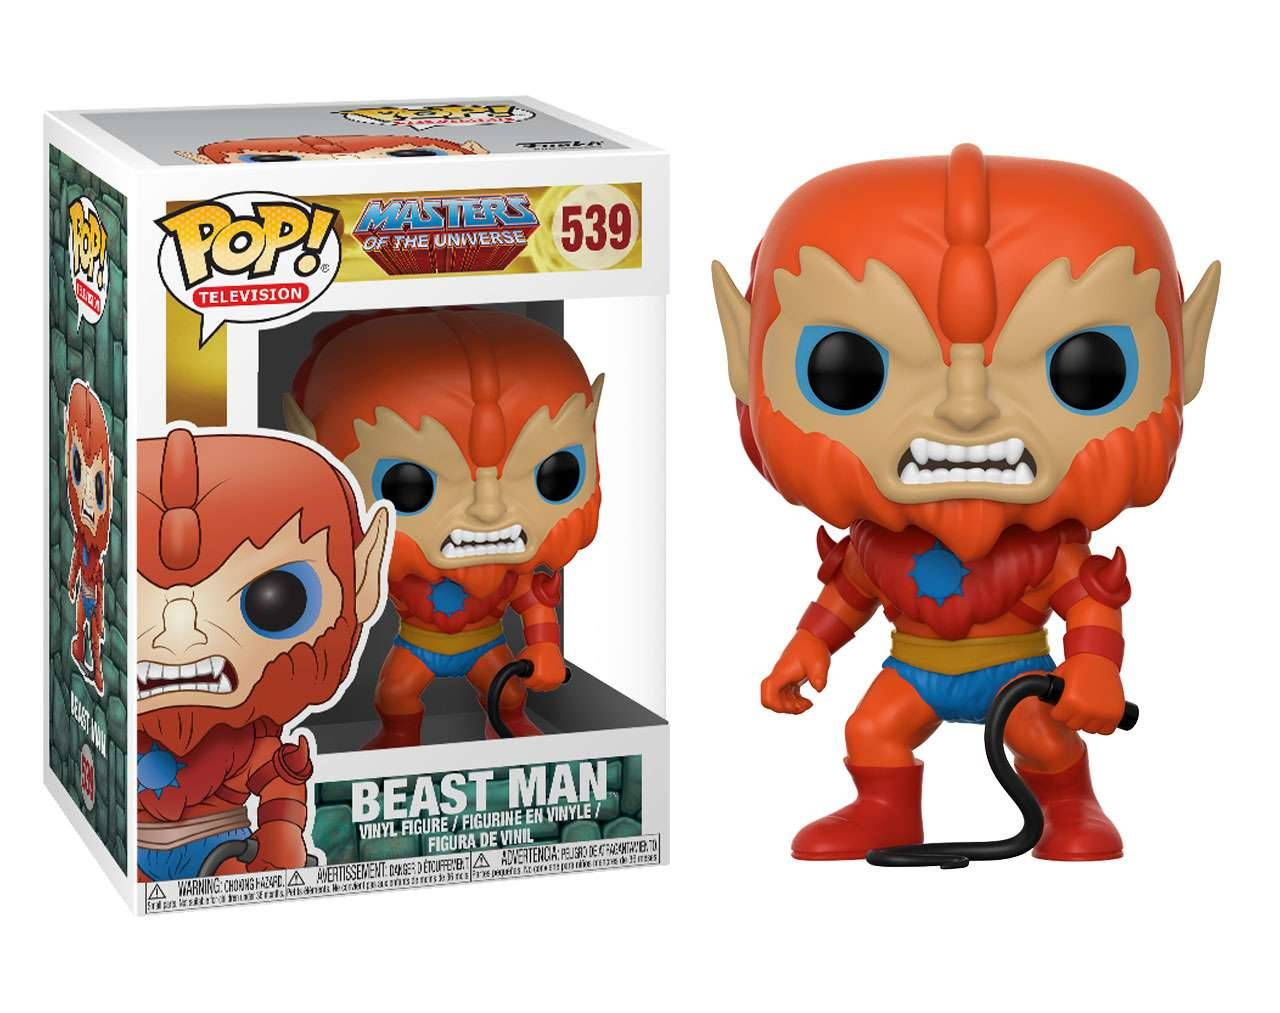 Beast Man (Descontinuado) Pop! Vinyl